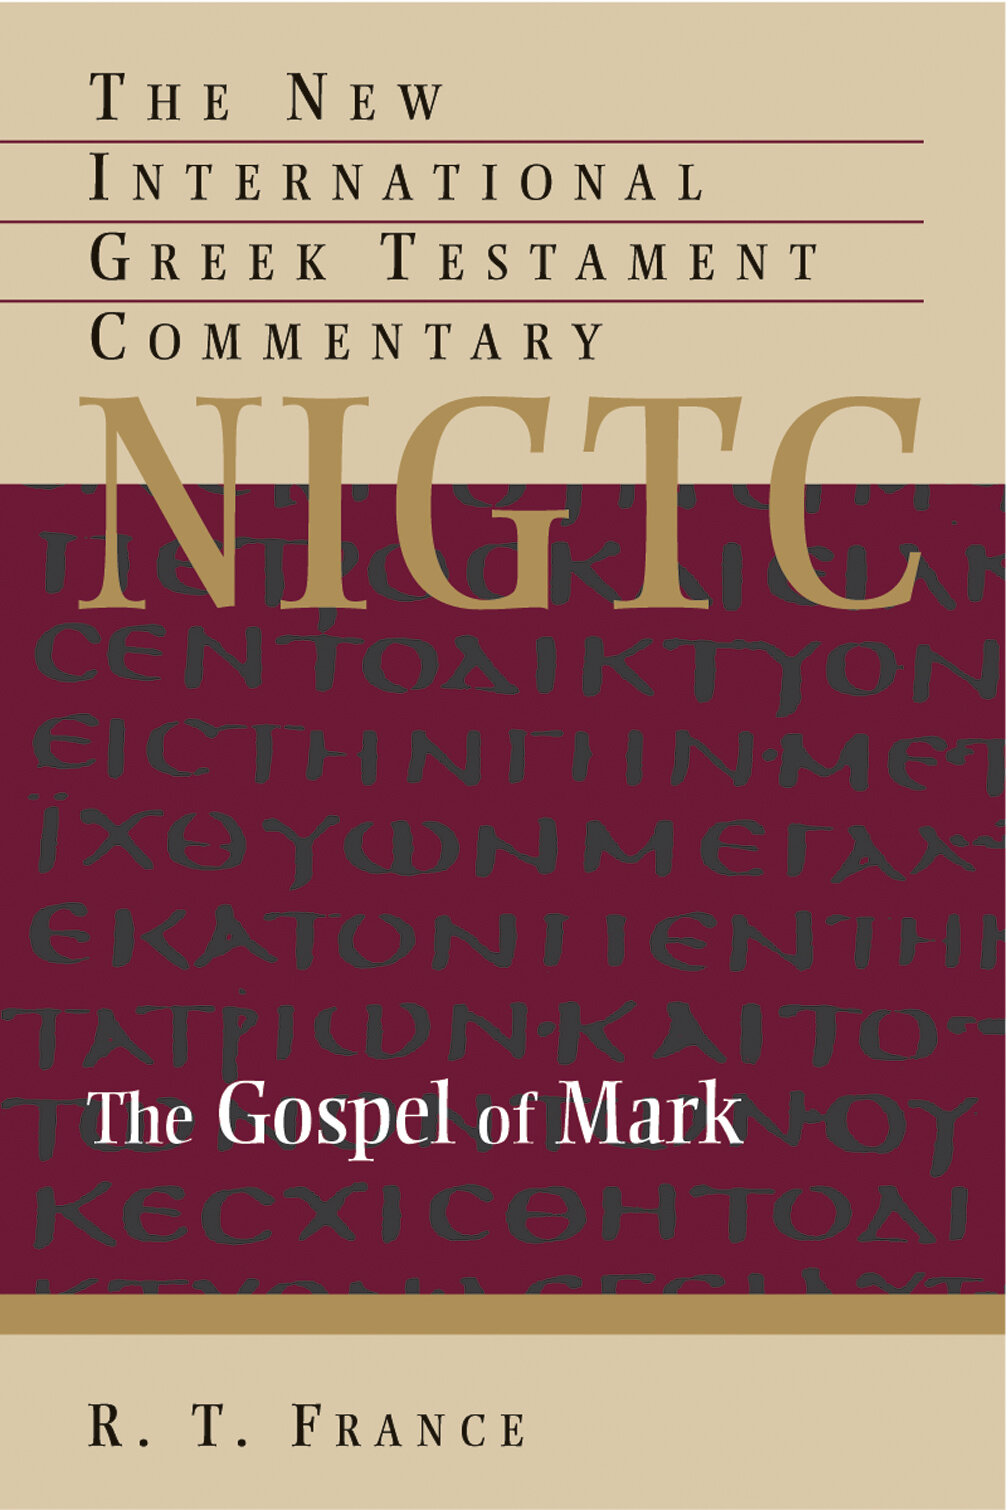 The Gospel of Mark (The New International Greek Testament Commentary | NIGTC)